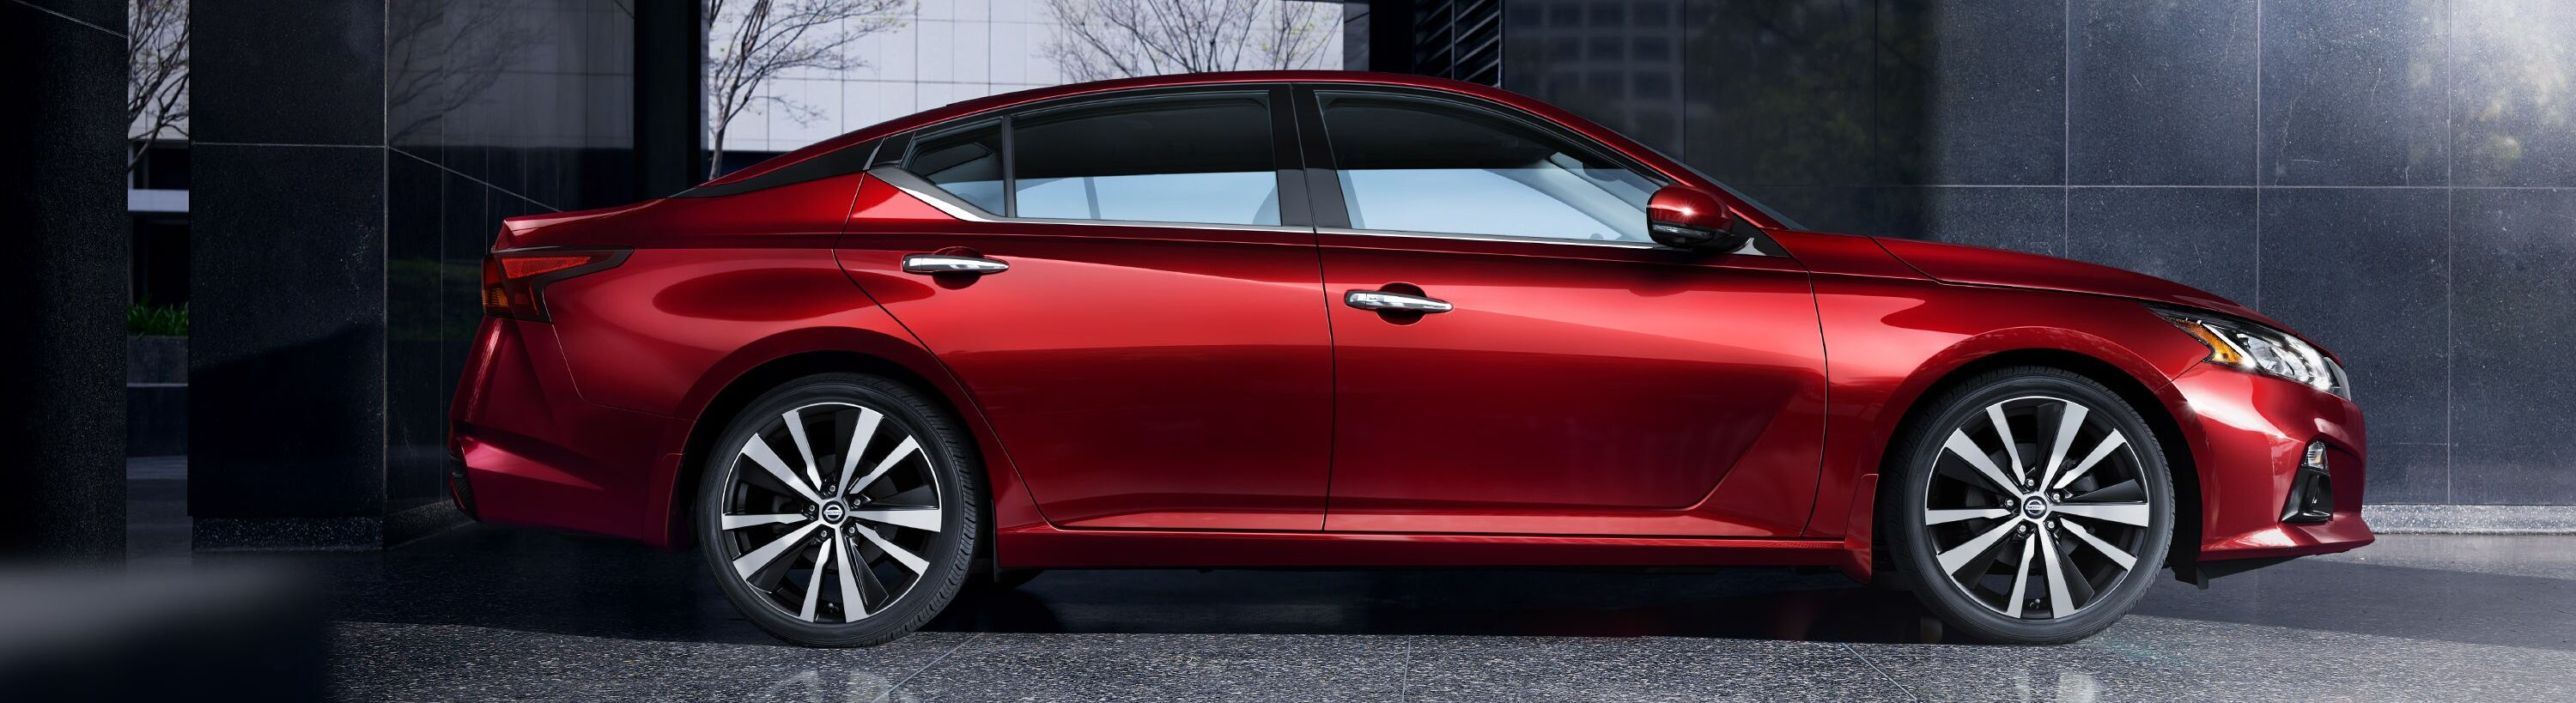 2019 Nissan Altima Financing near Morton Grove, IL